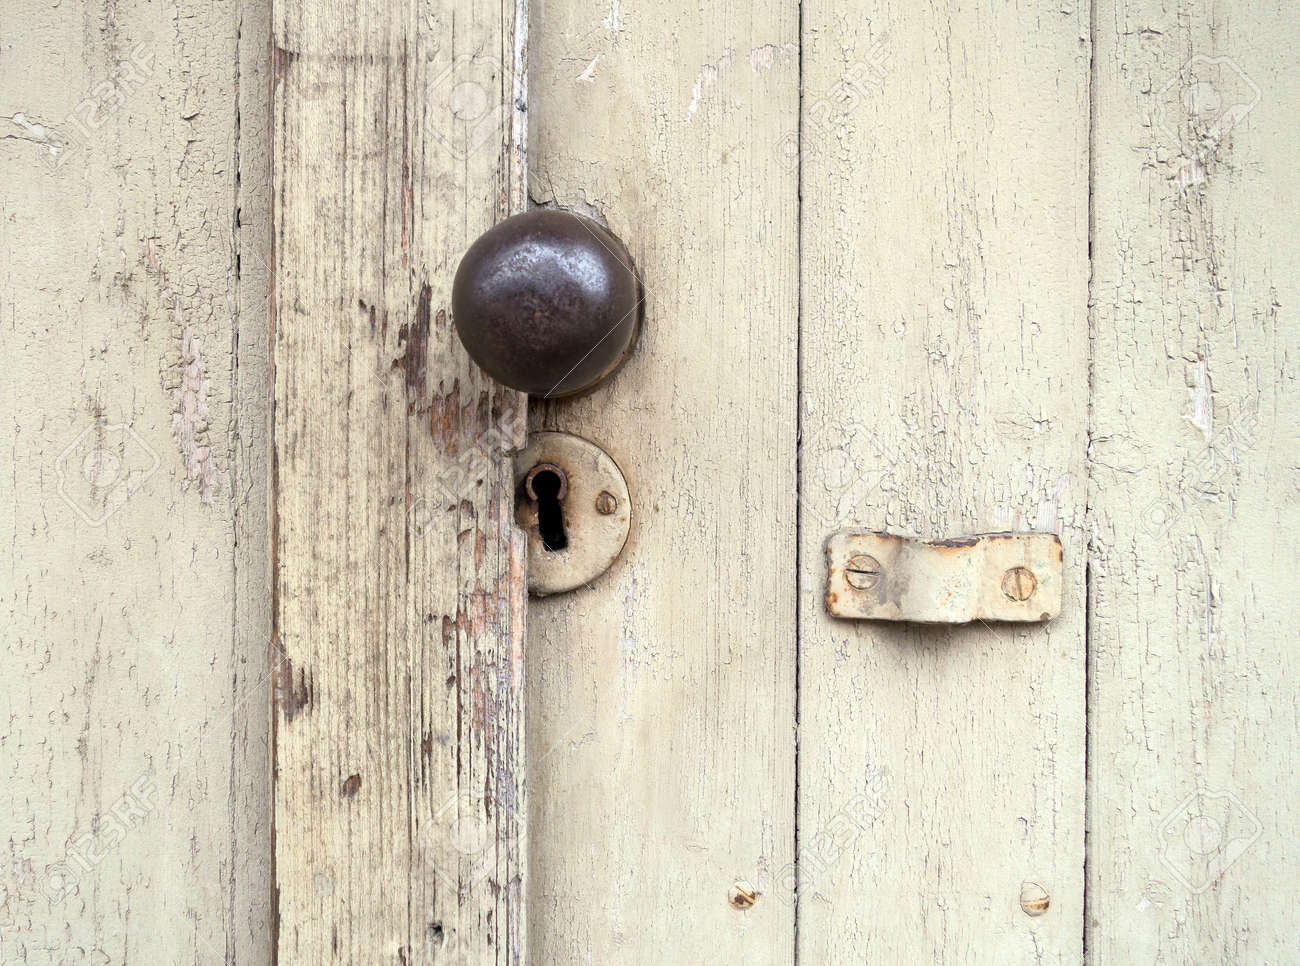 Old Lock With A Round Door Knob On A Weathered, Beige Wooden.. Stock ...